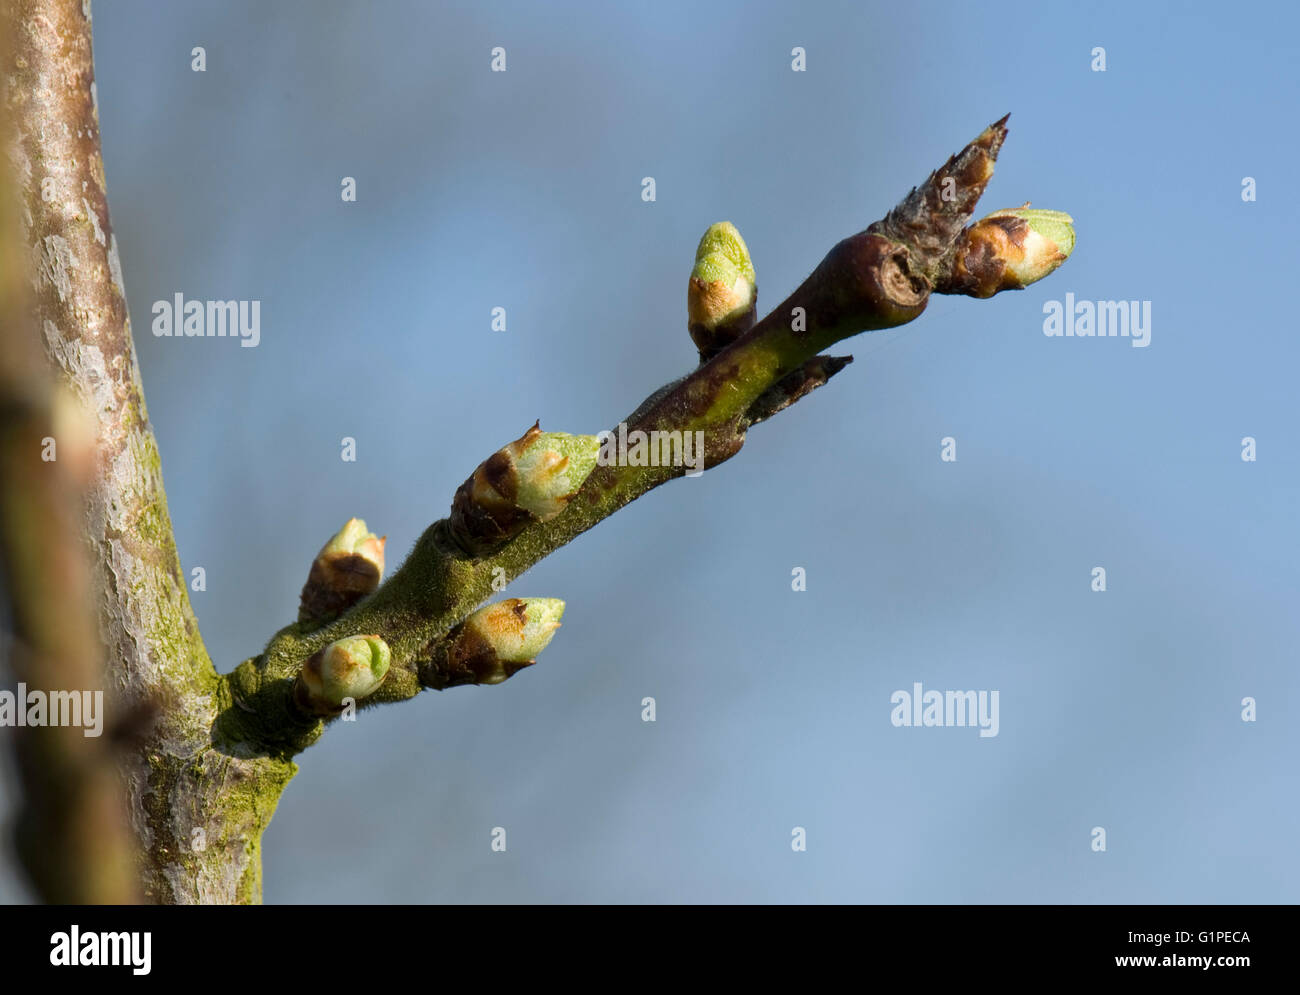 Swelling leaf and flower buds of a Victoria plum tree, Prunus domestica, in early spring, Berkshire, March - Stock Image